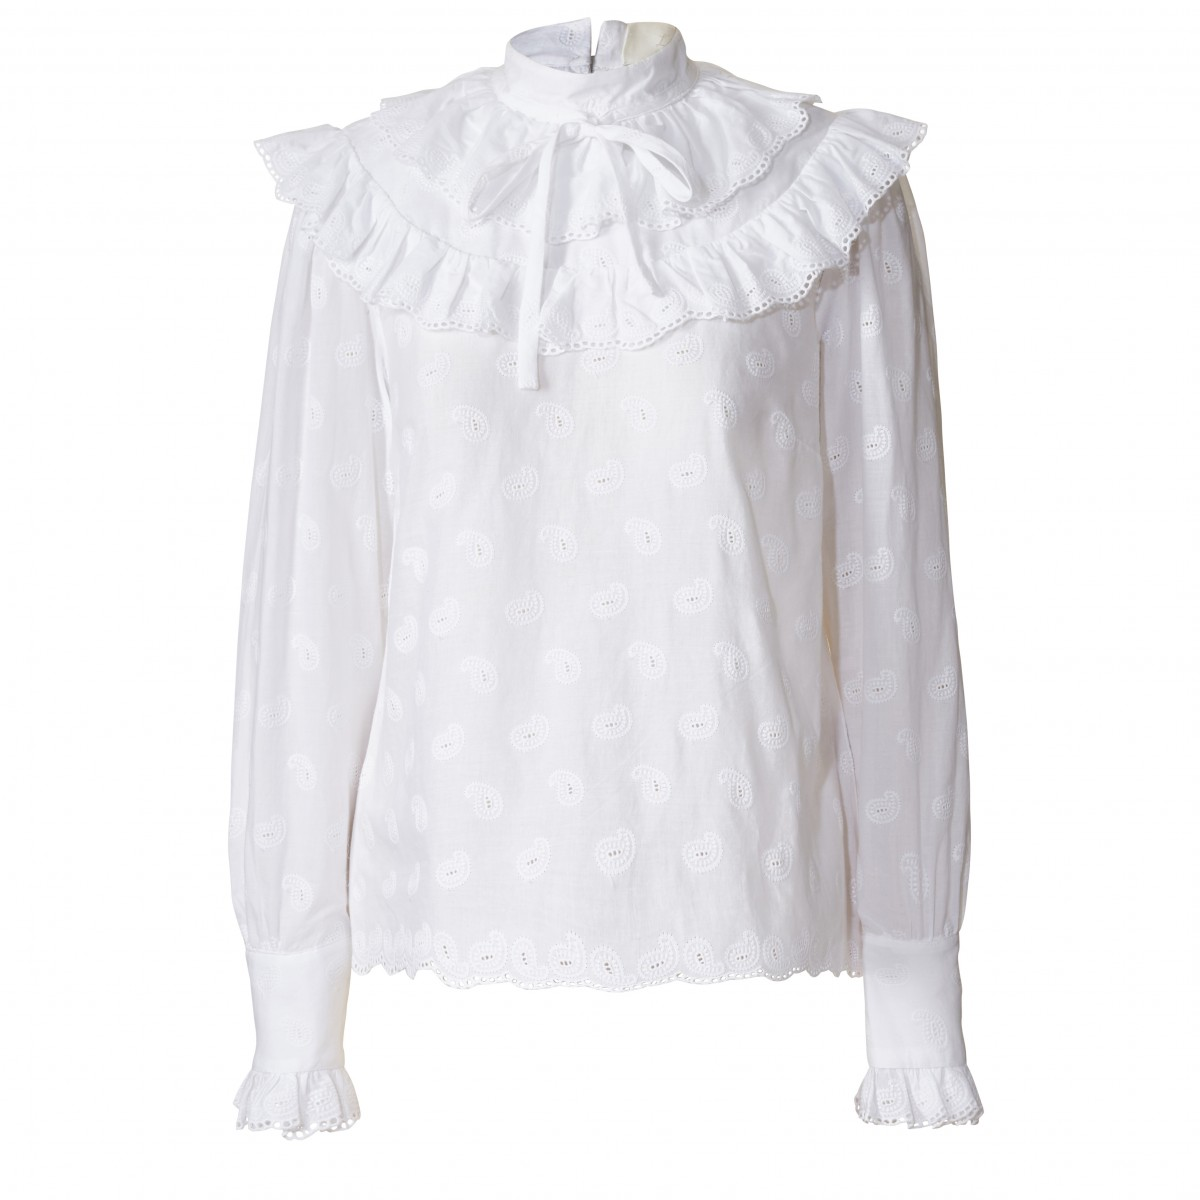 Pippa Honeymoon blouse by Orla Kiely